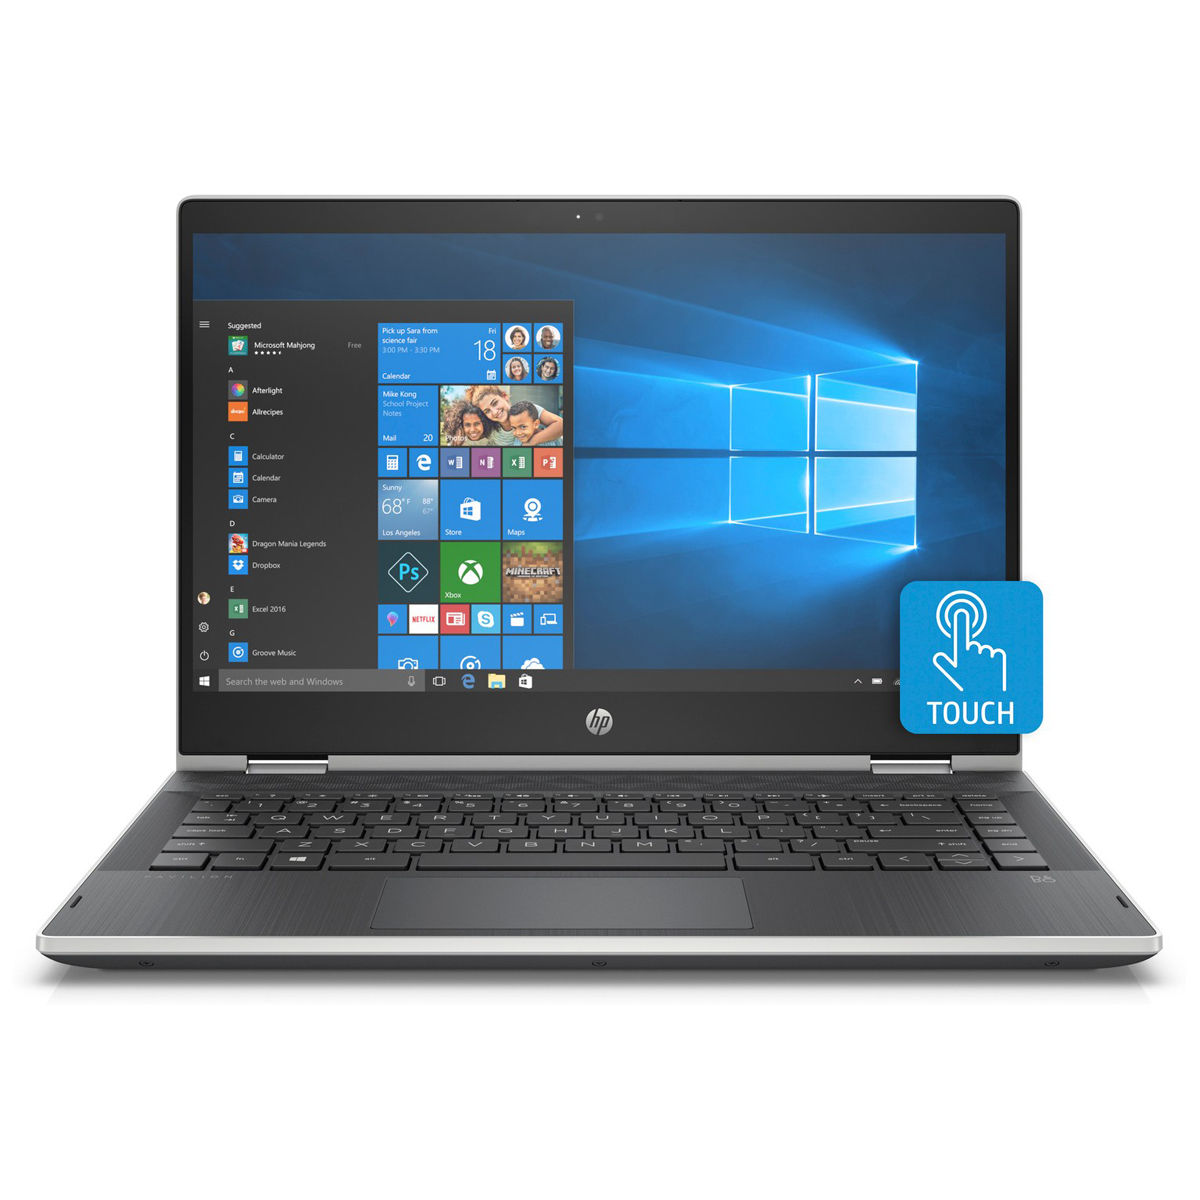 HP Pavilion x360 (Core i3-8130U, 256 GB SSD) Convertible Review